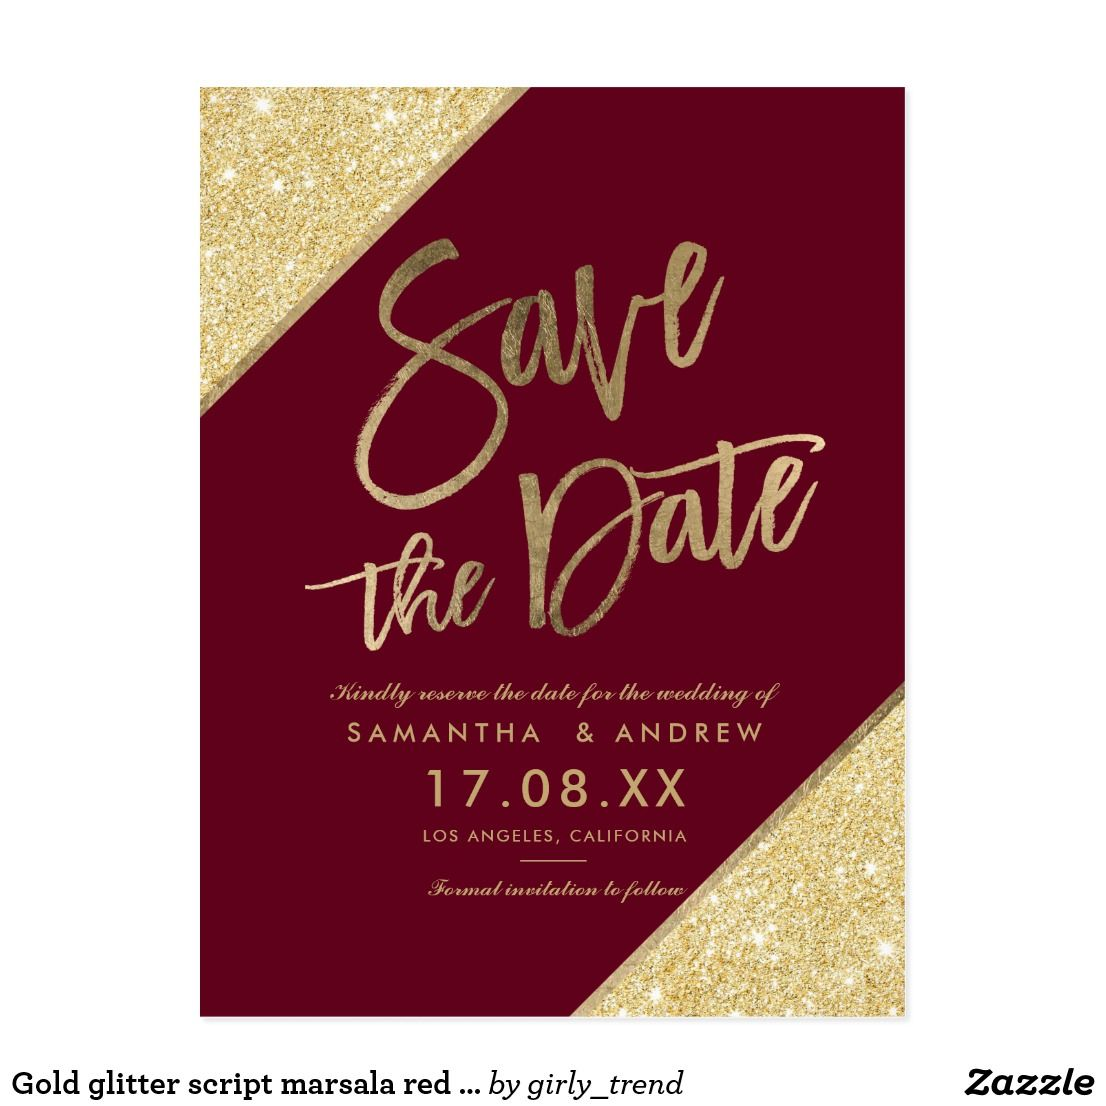 Gold glitter script marsala red save the date announcement postcard ...